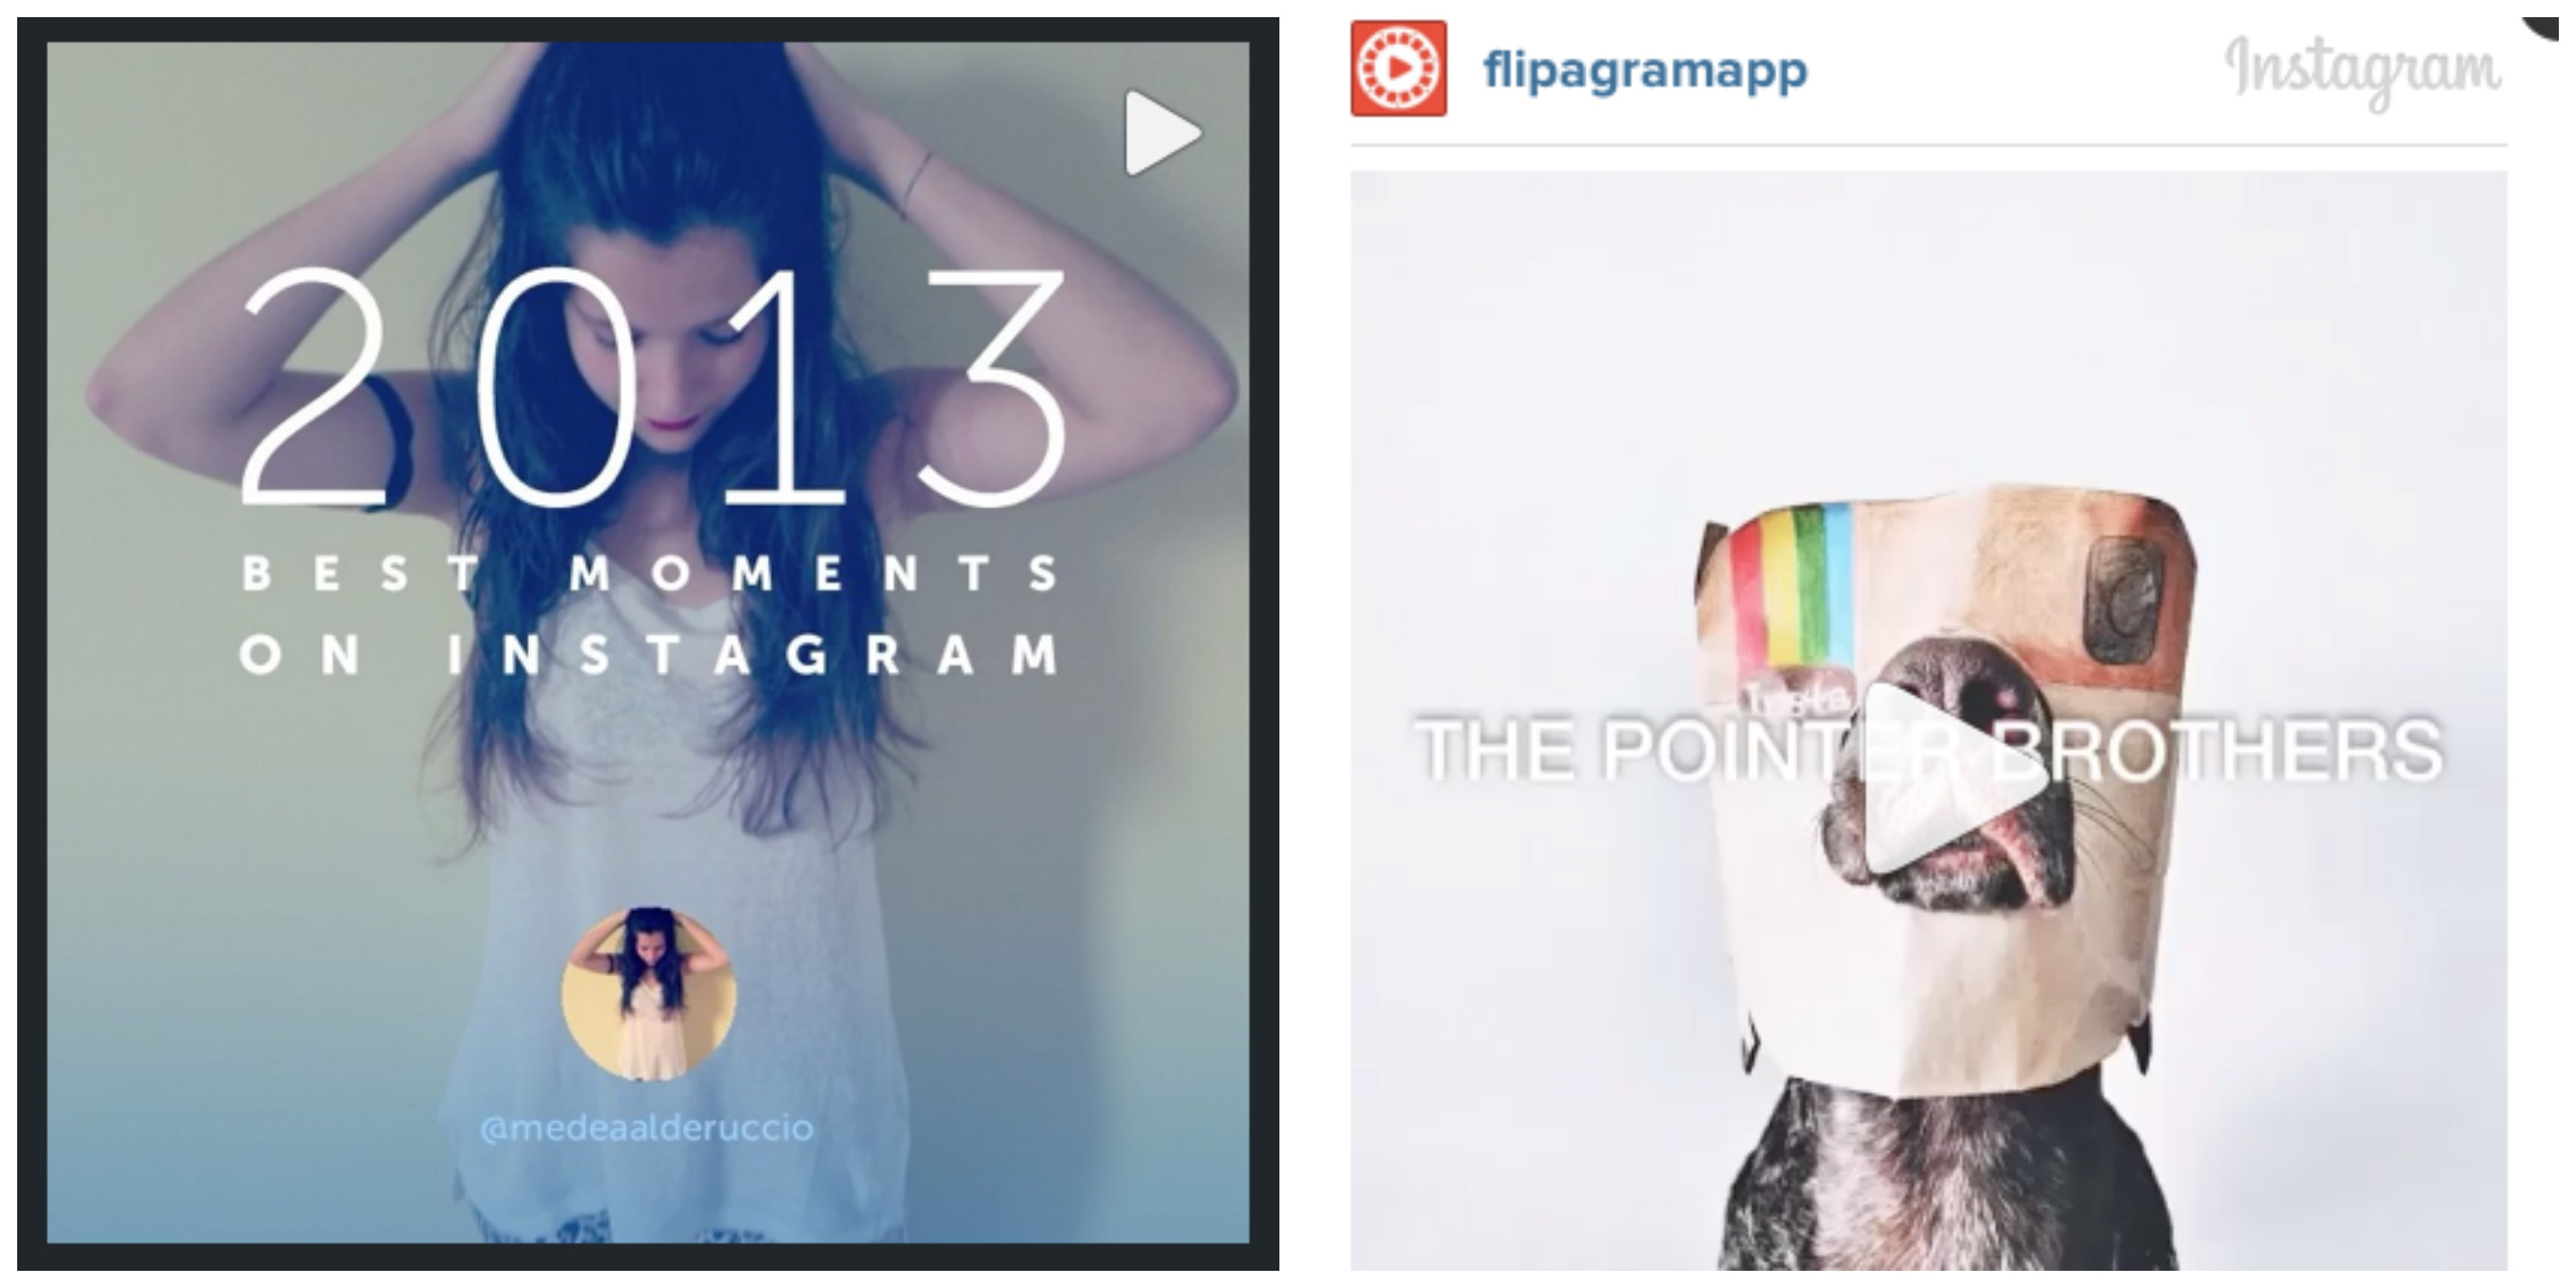 Statigram vs. Flipagram: Which is better for the end-of-the-year photo videos we're seeing all over Instagram?